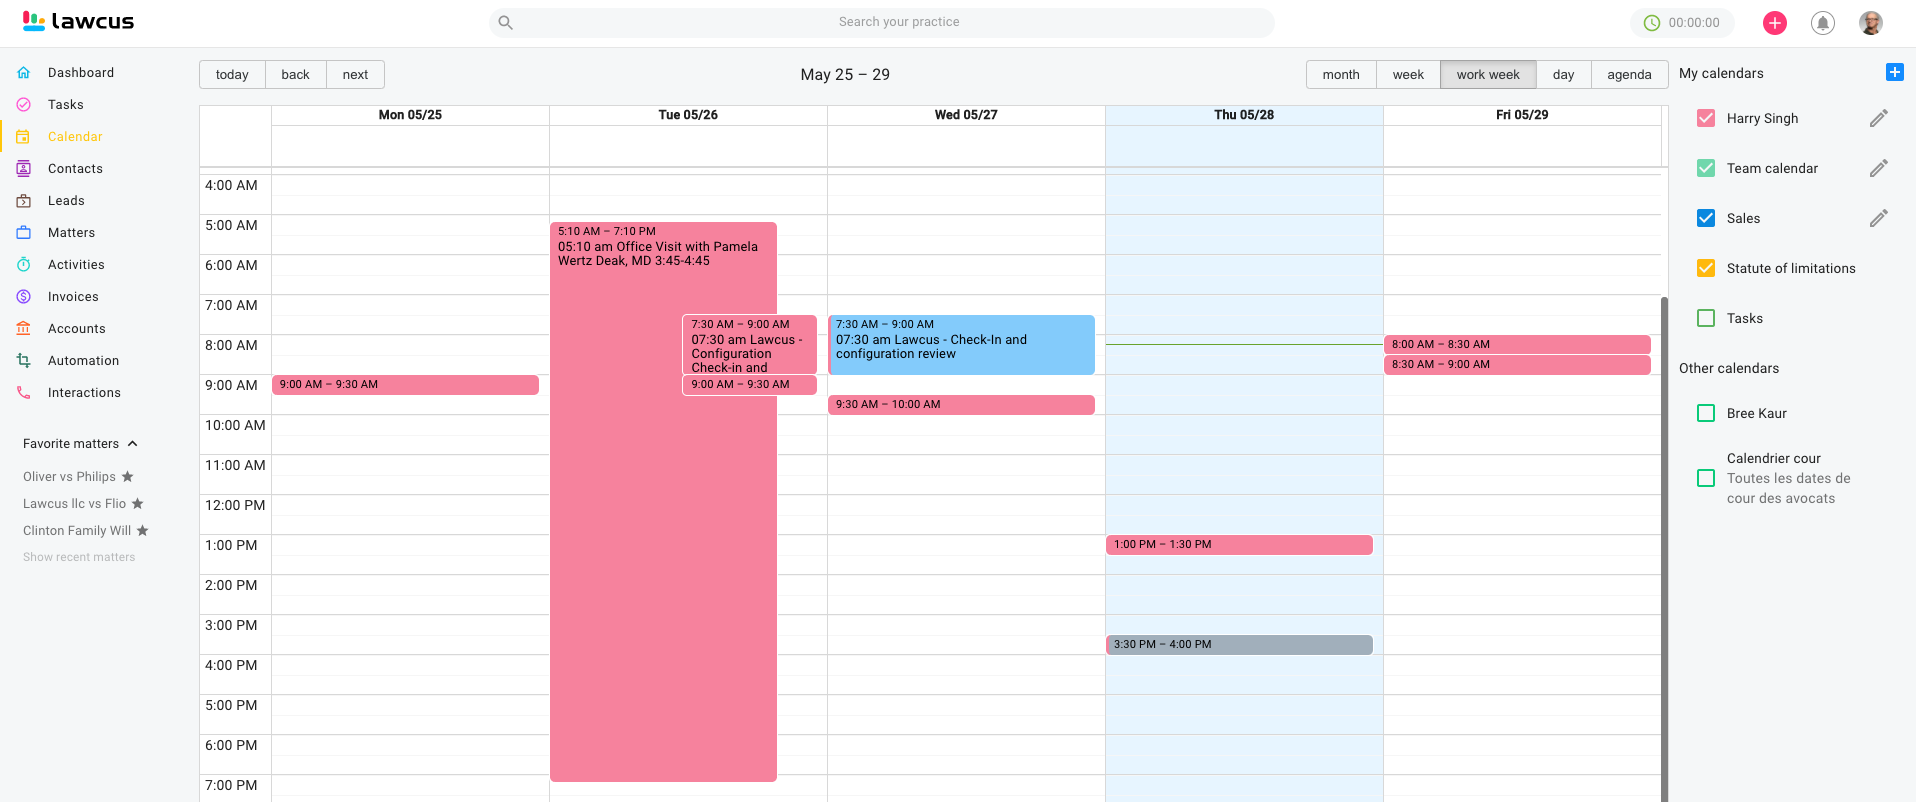 Legal Calendar - ColorCodeEvents